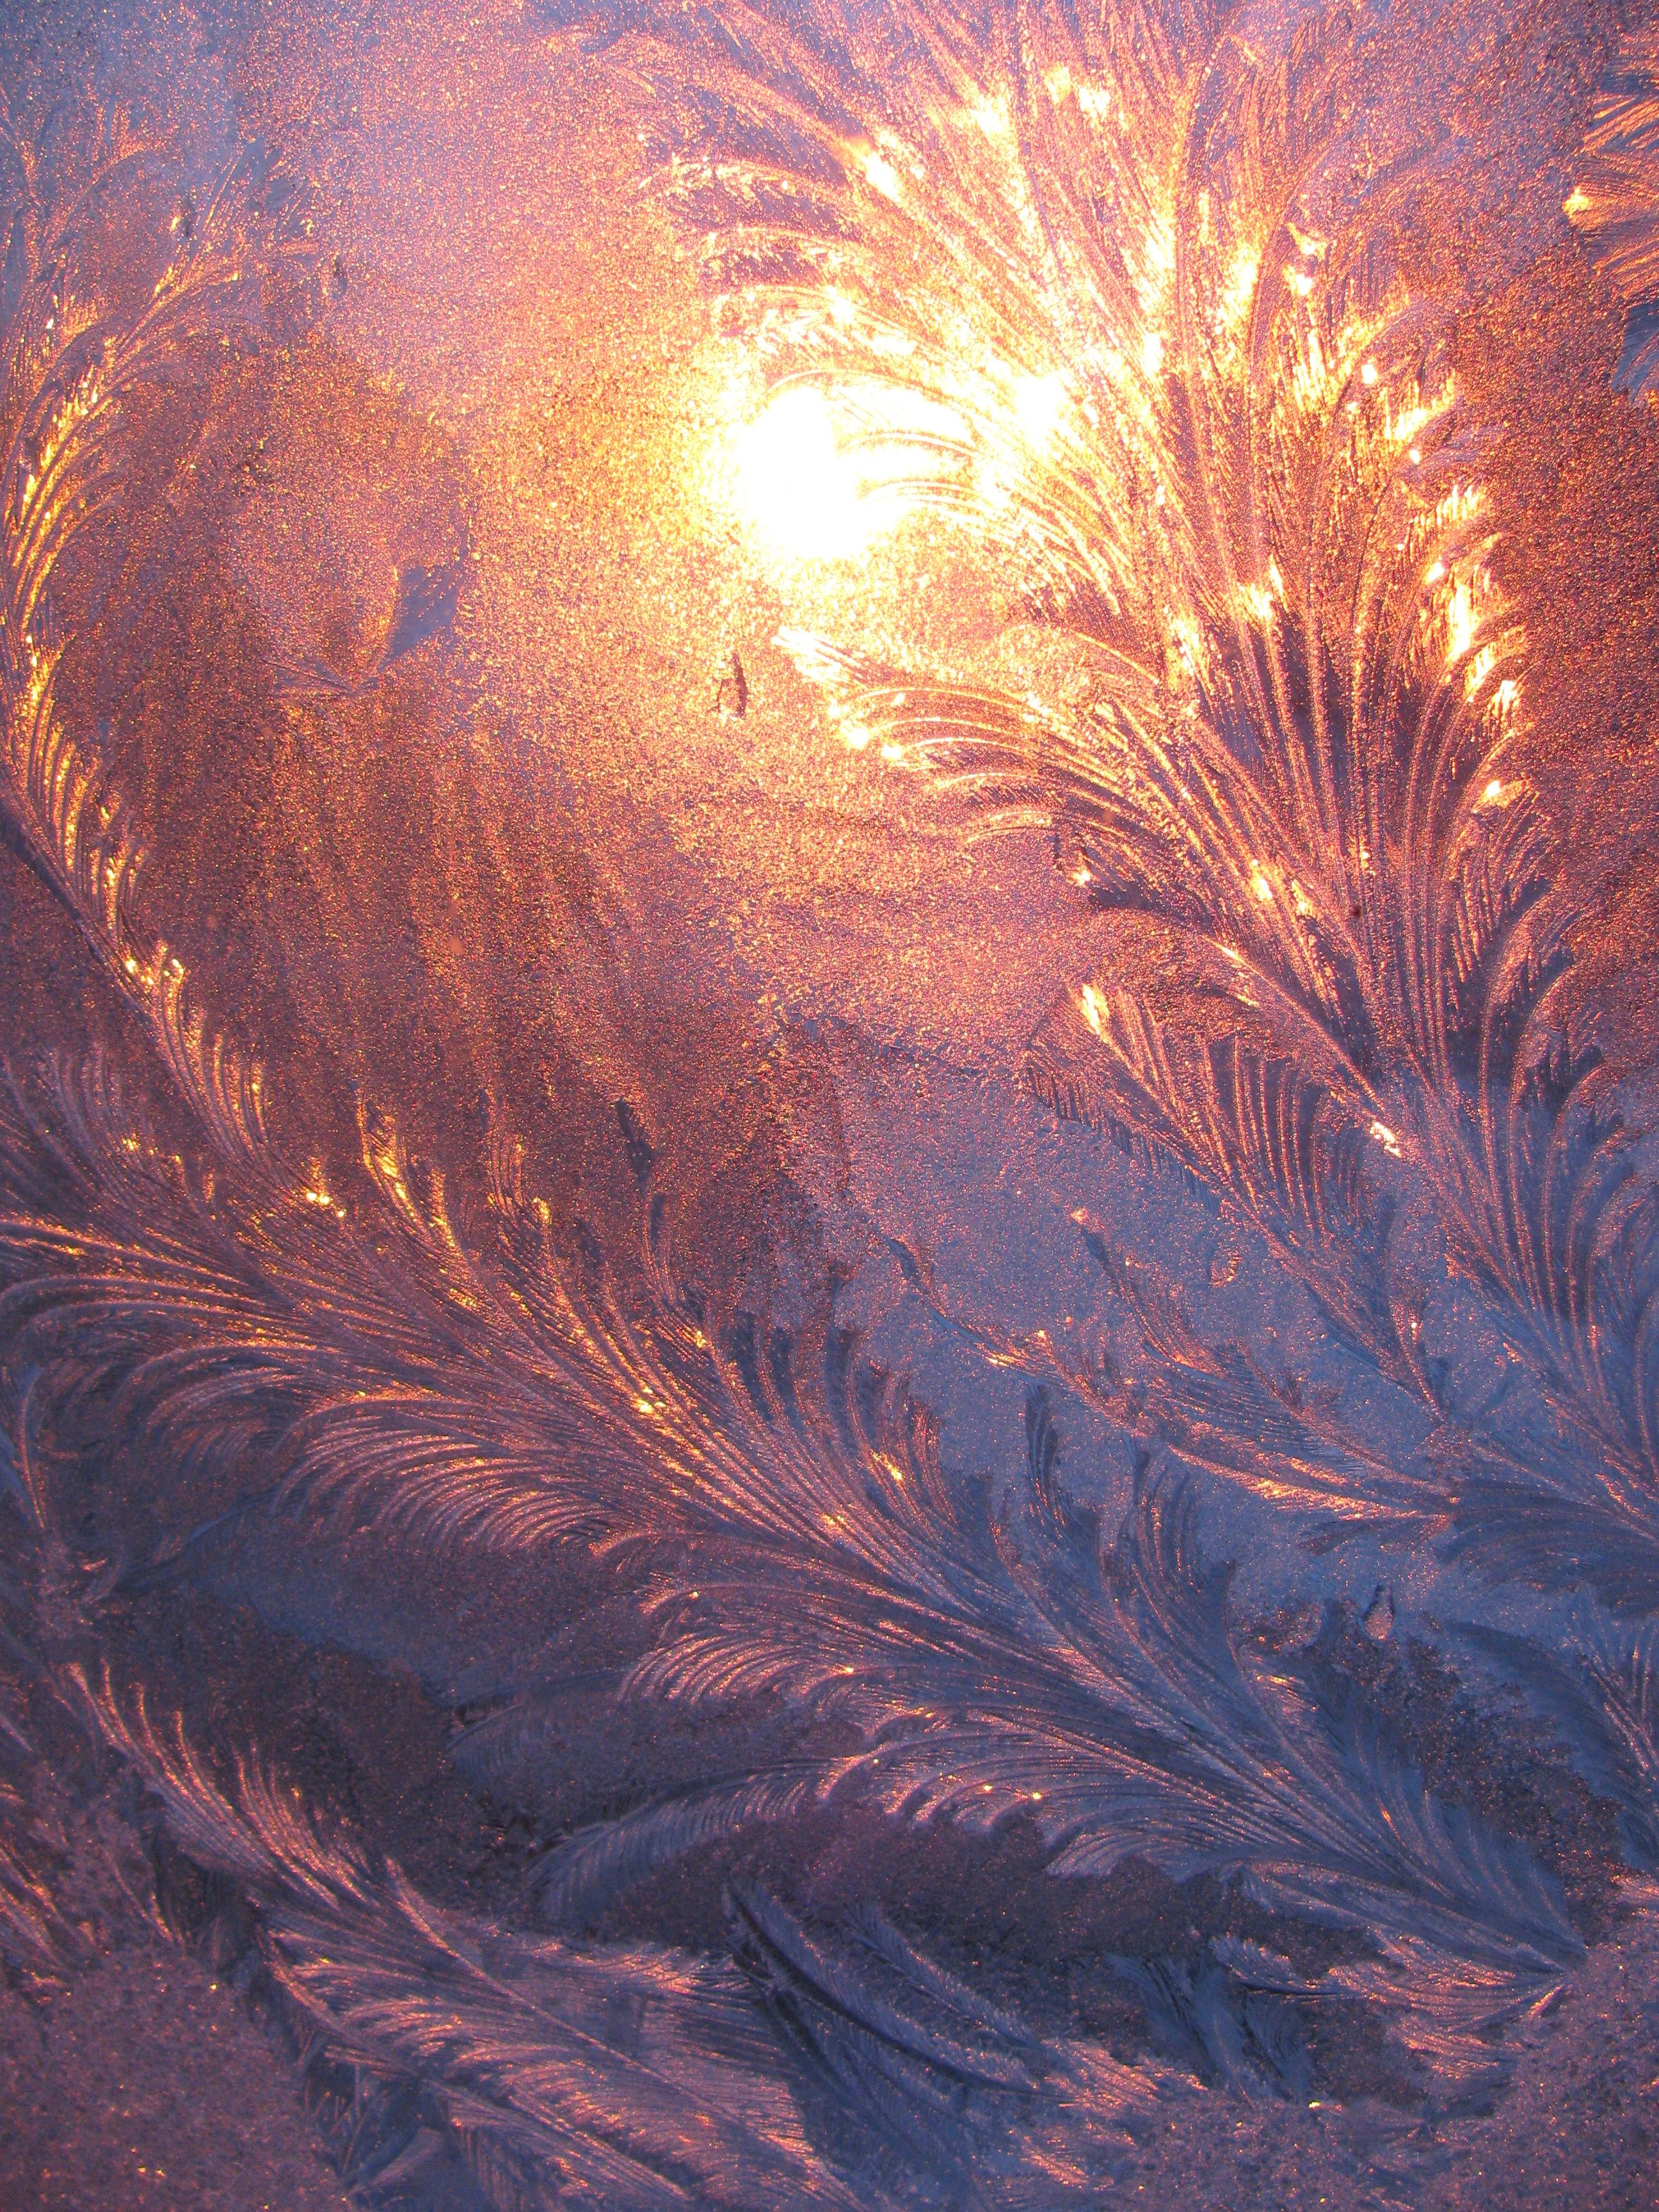 Morning sun through a frosted window